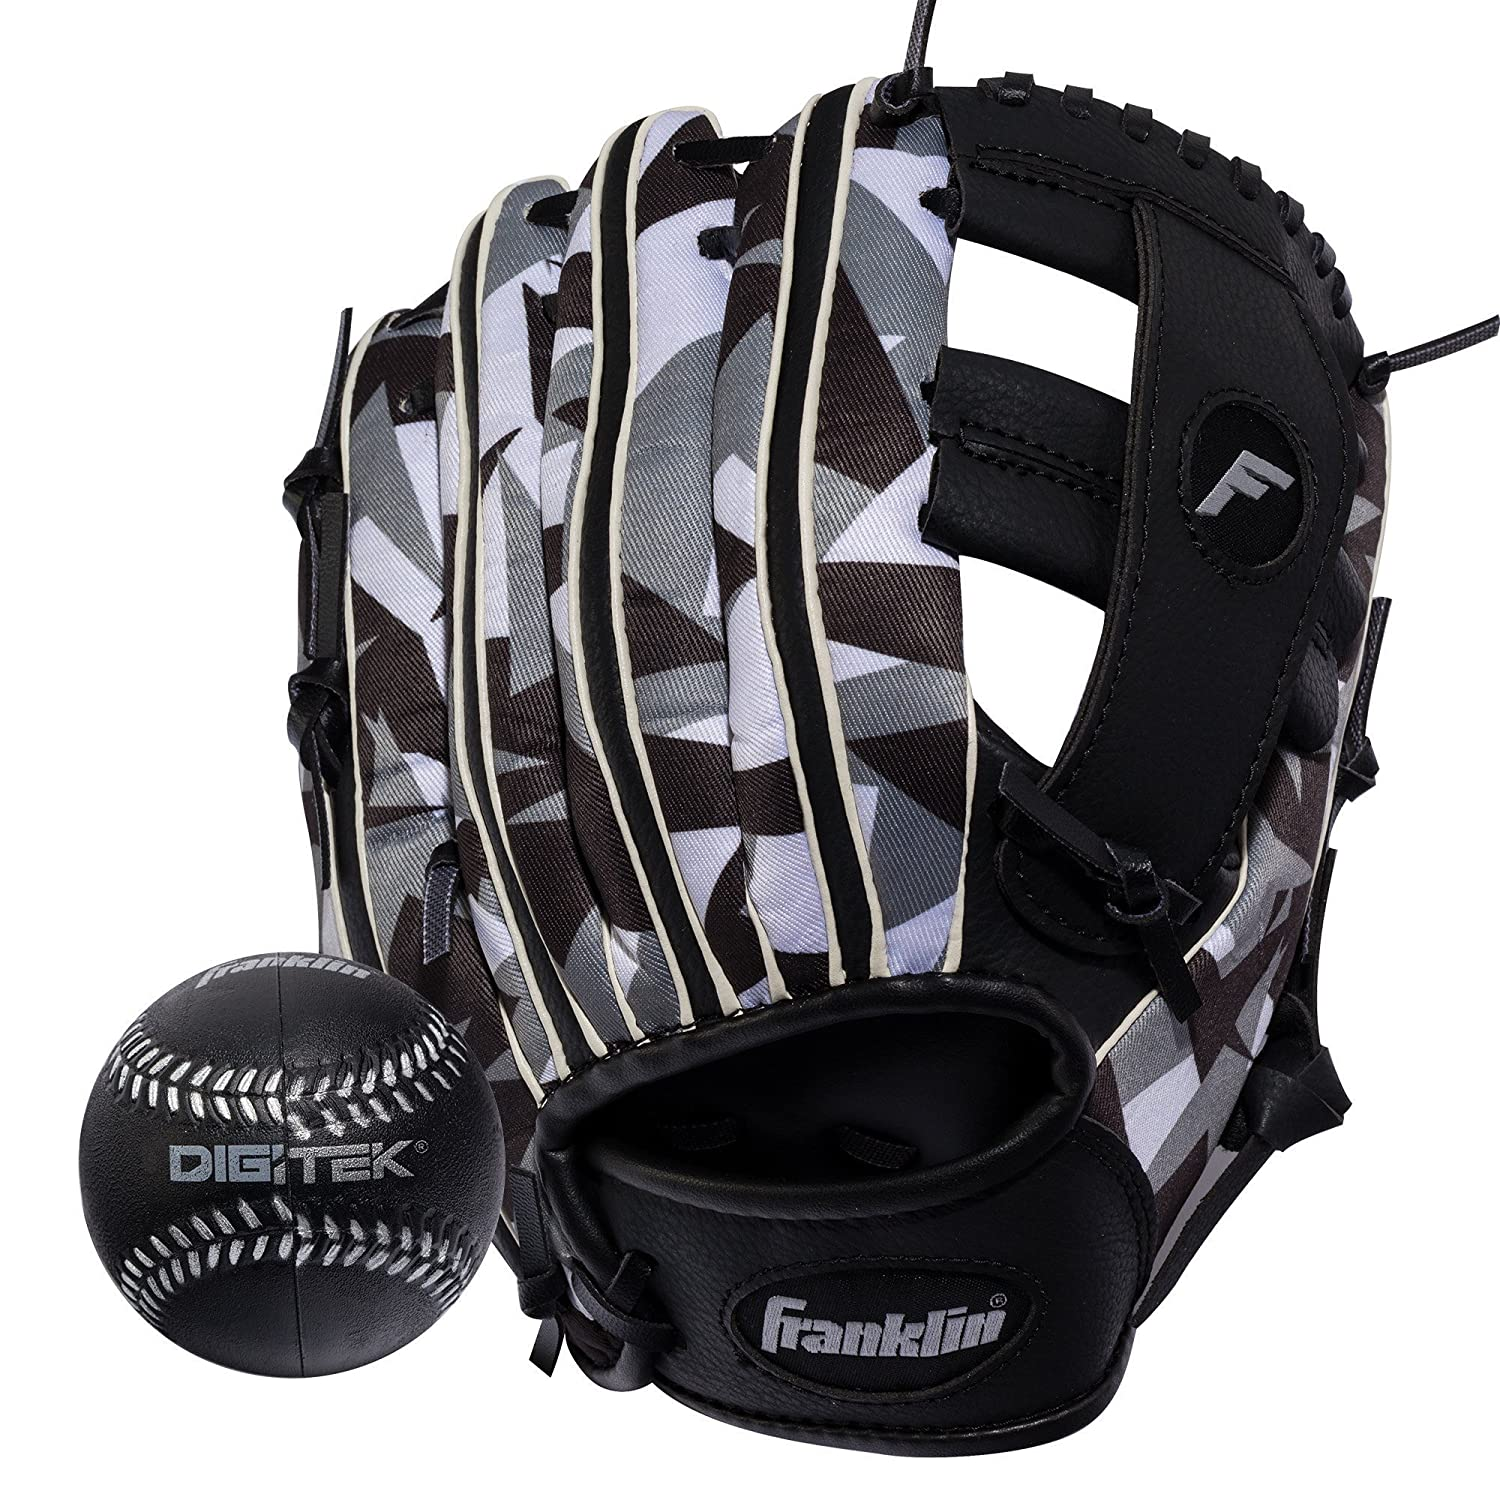 Franklin Sports RTP Teeball Performance Gloves and Ball Combo, 9.5-Inch, Right Hand Throw, Black/White 22839